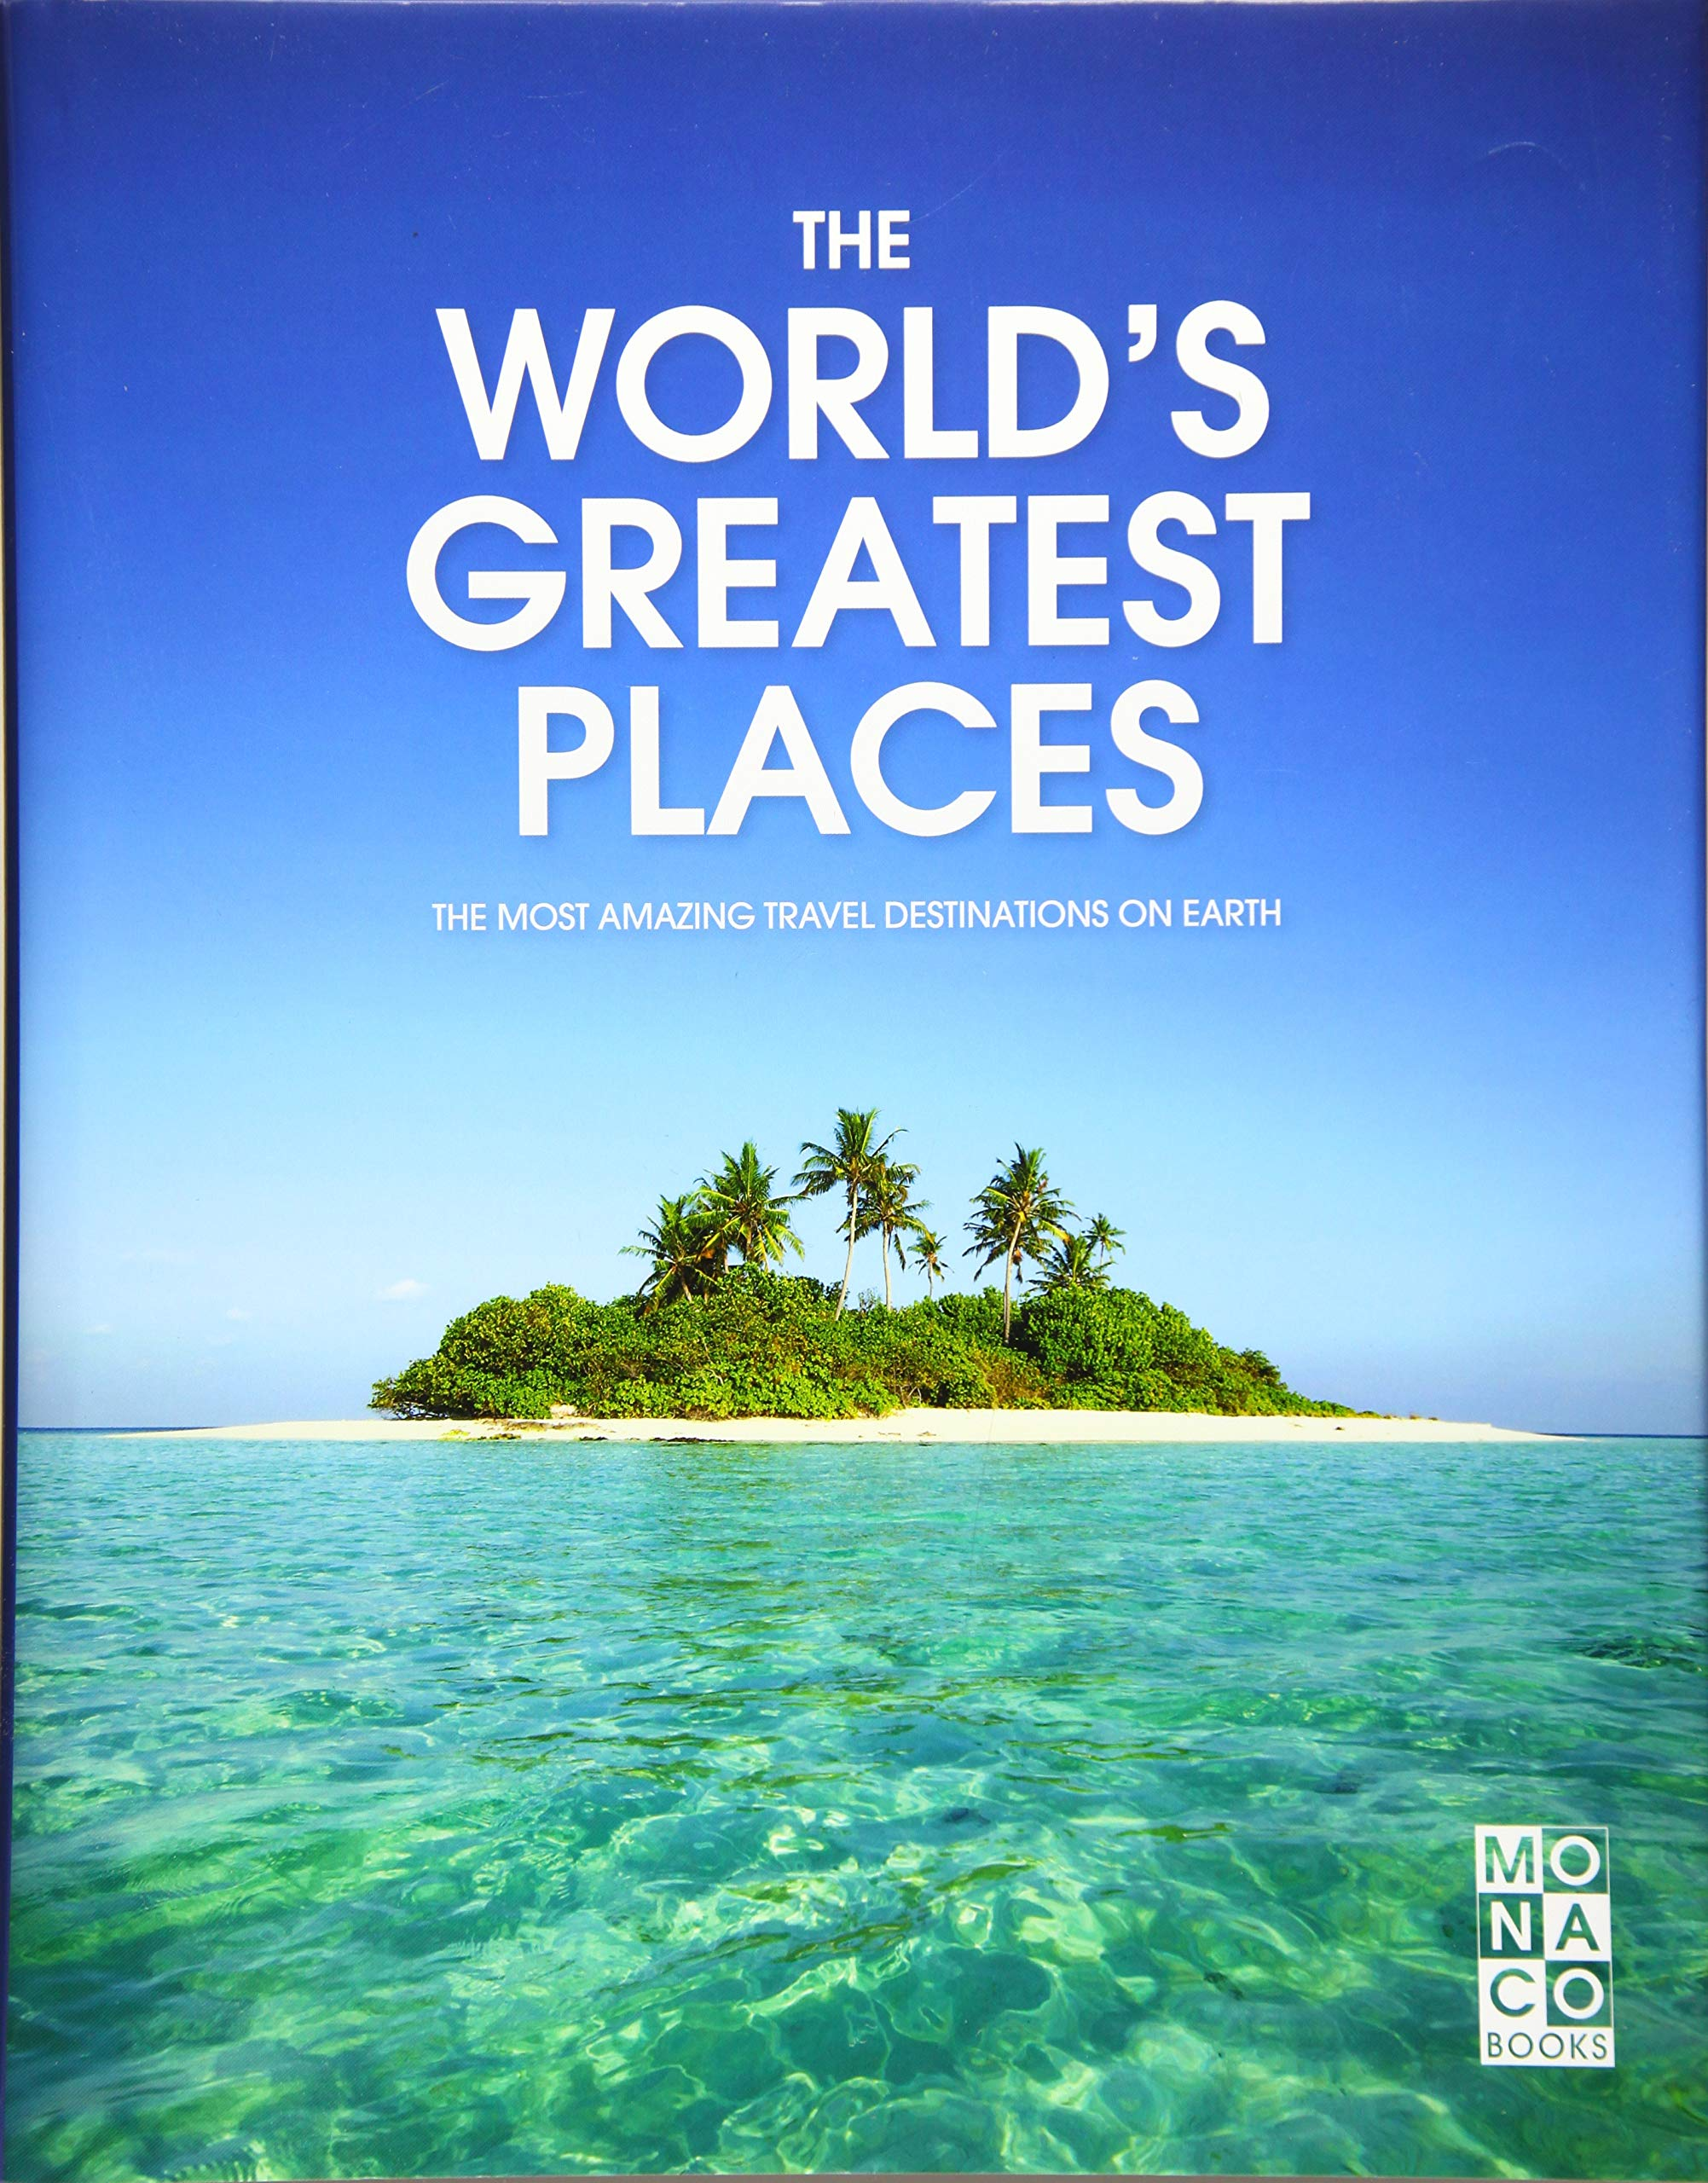 World S Greatest Places The The Most Amazing Travel Destinations On Earth Amazon In Monaco Books